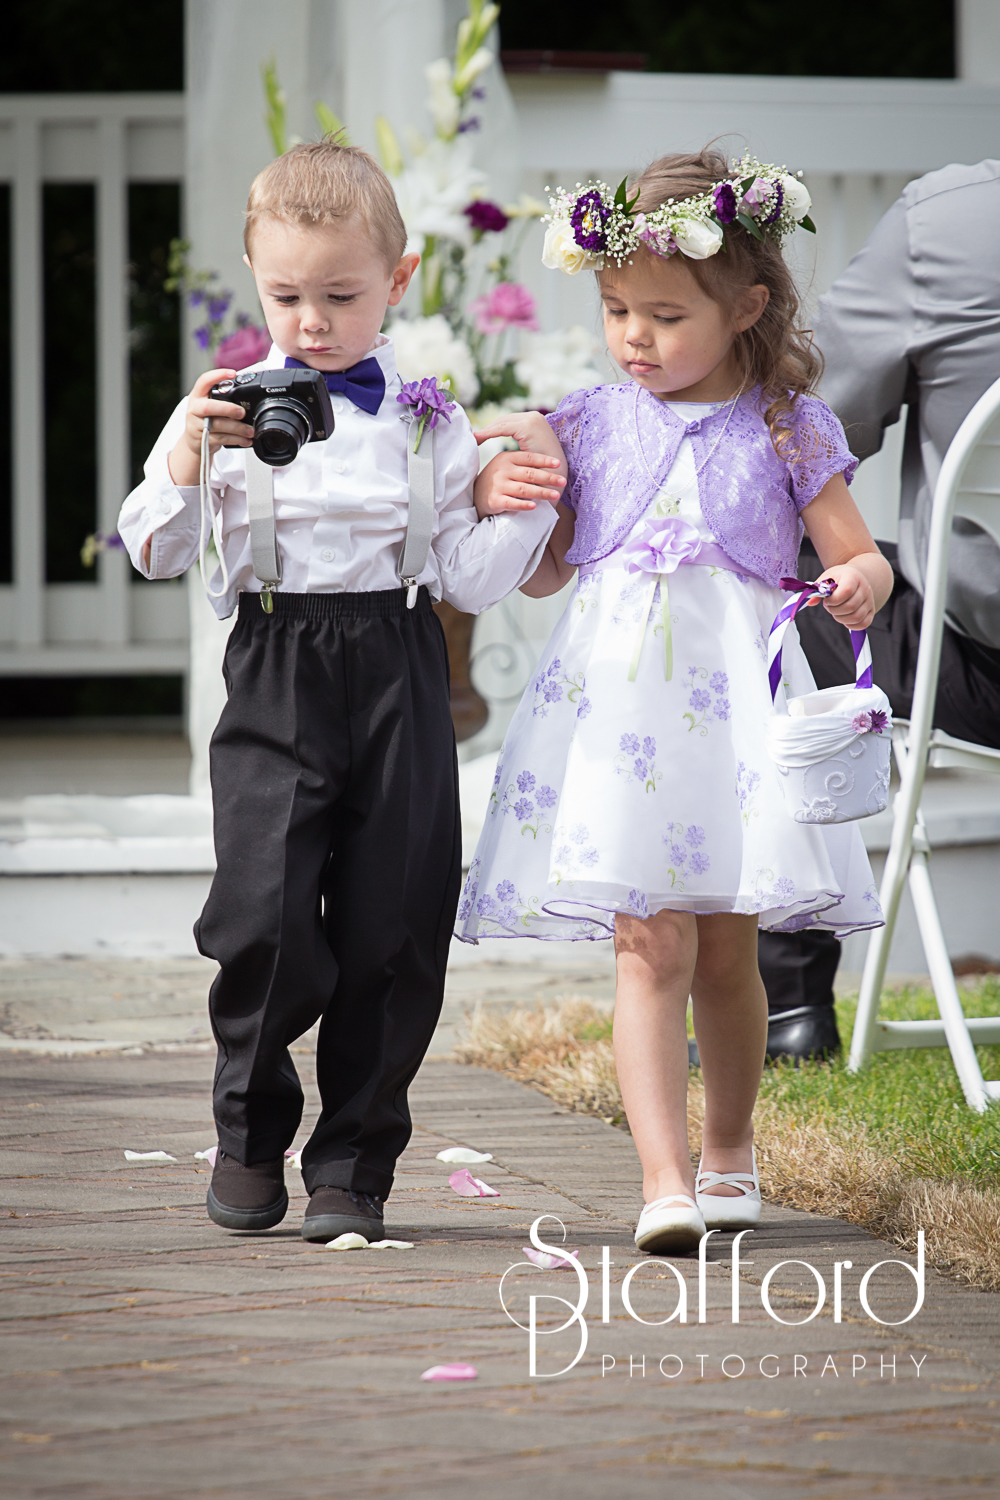 I just loved these two. Braden was so interested with the camera he wasn't wanting to walk down the aisle so adorable little Ava grabbed his hand it was so cute.